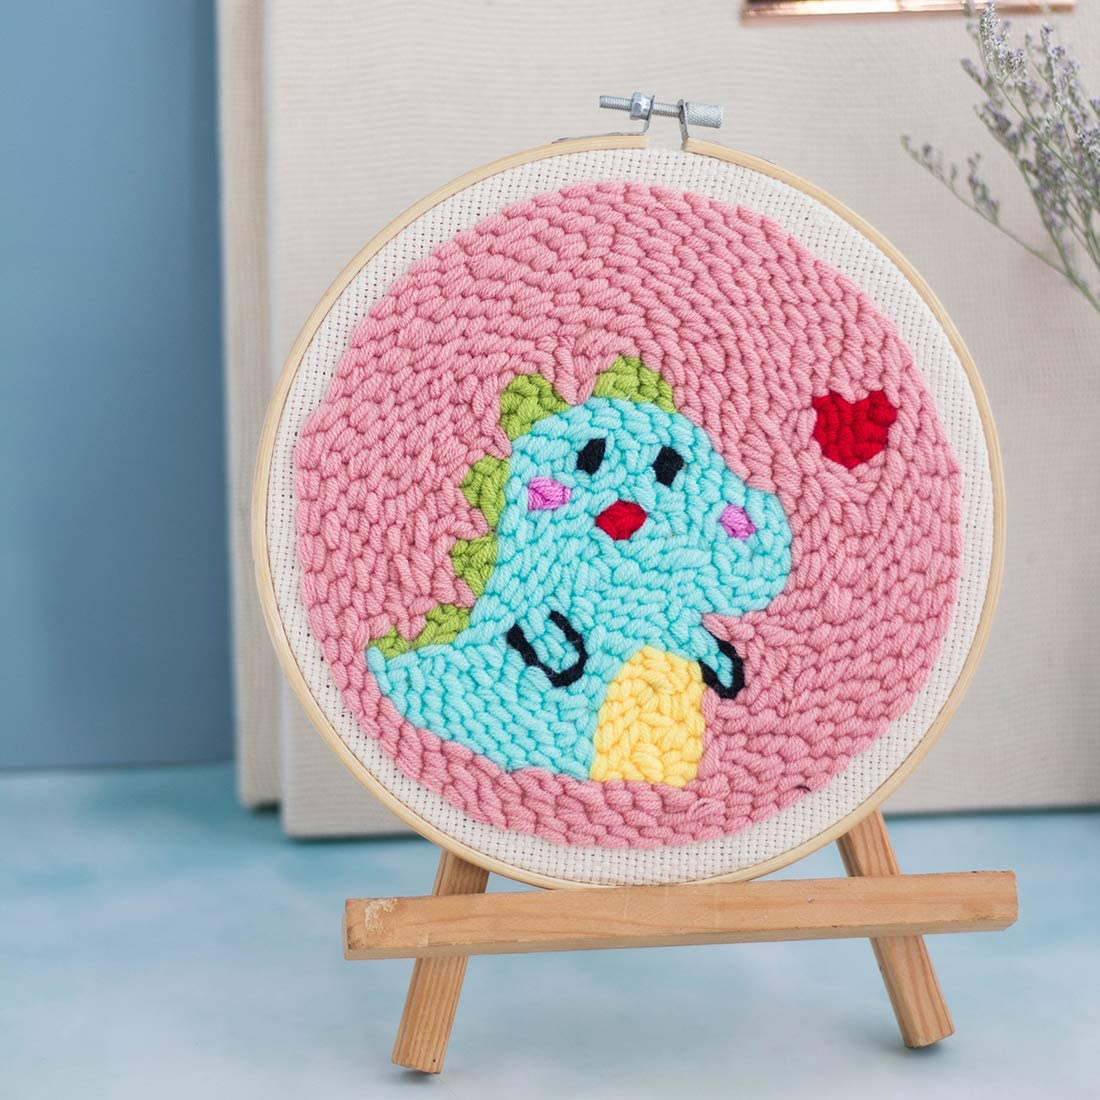 Little Dinosaur HMANE DIY Rug Hooking Kit Handcraft Woolen Embroidery Knitting with Punch Needle Embroidery Frame Creative Gift with Punch Needle 20x20cm Embroidery Frame and Holder